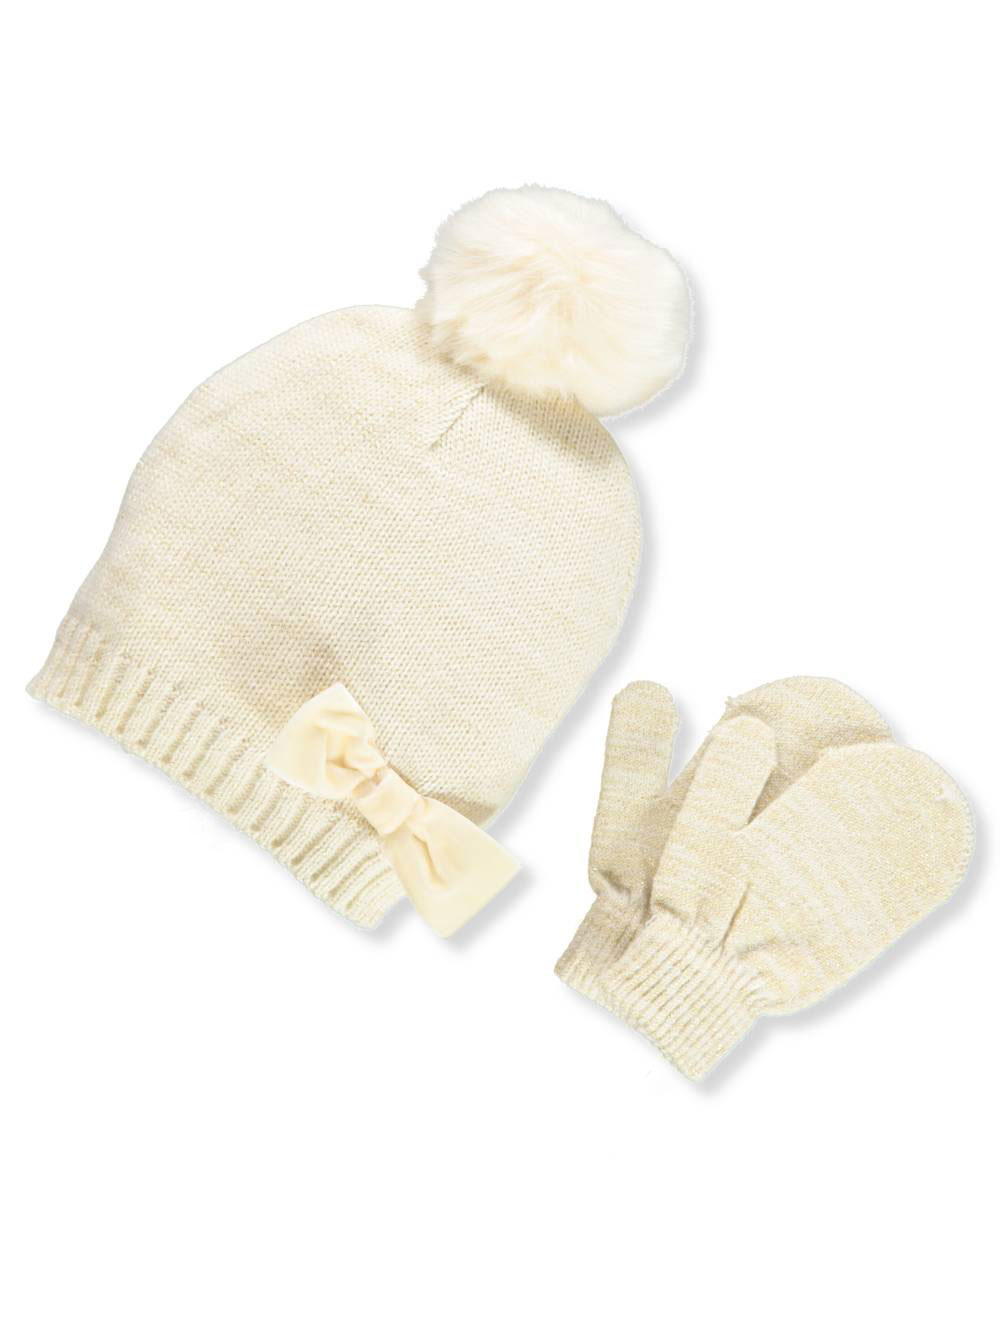 Addie & Tate Girls' Beanie & Mittens Set (Toddler One Size)